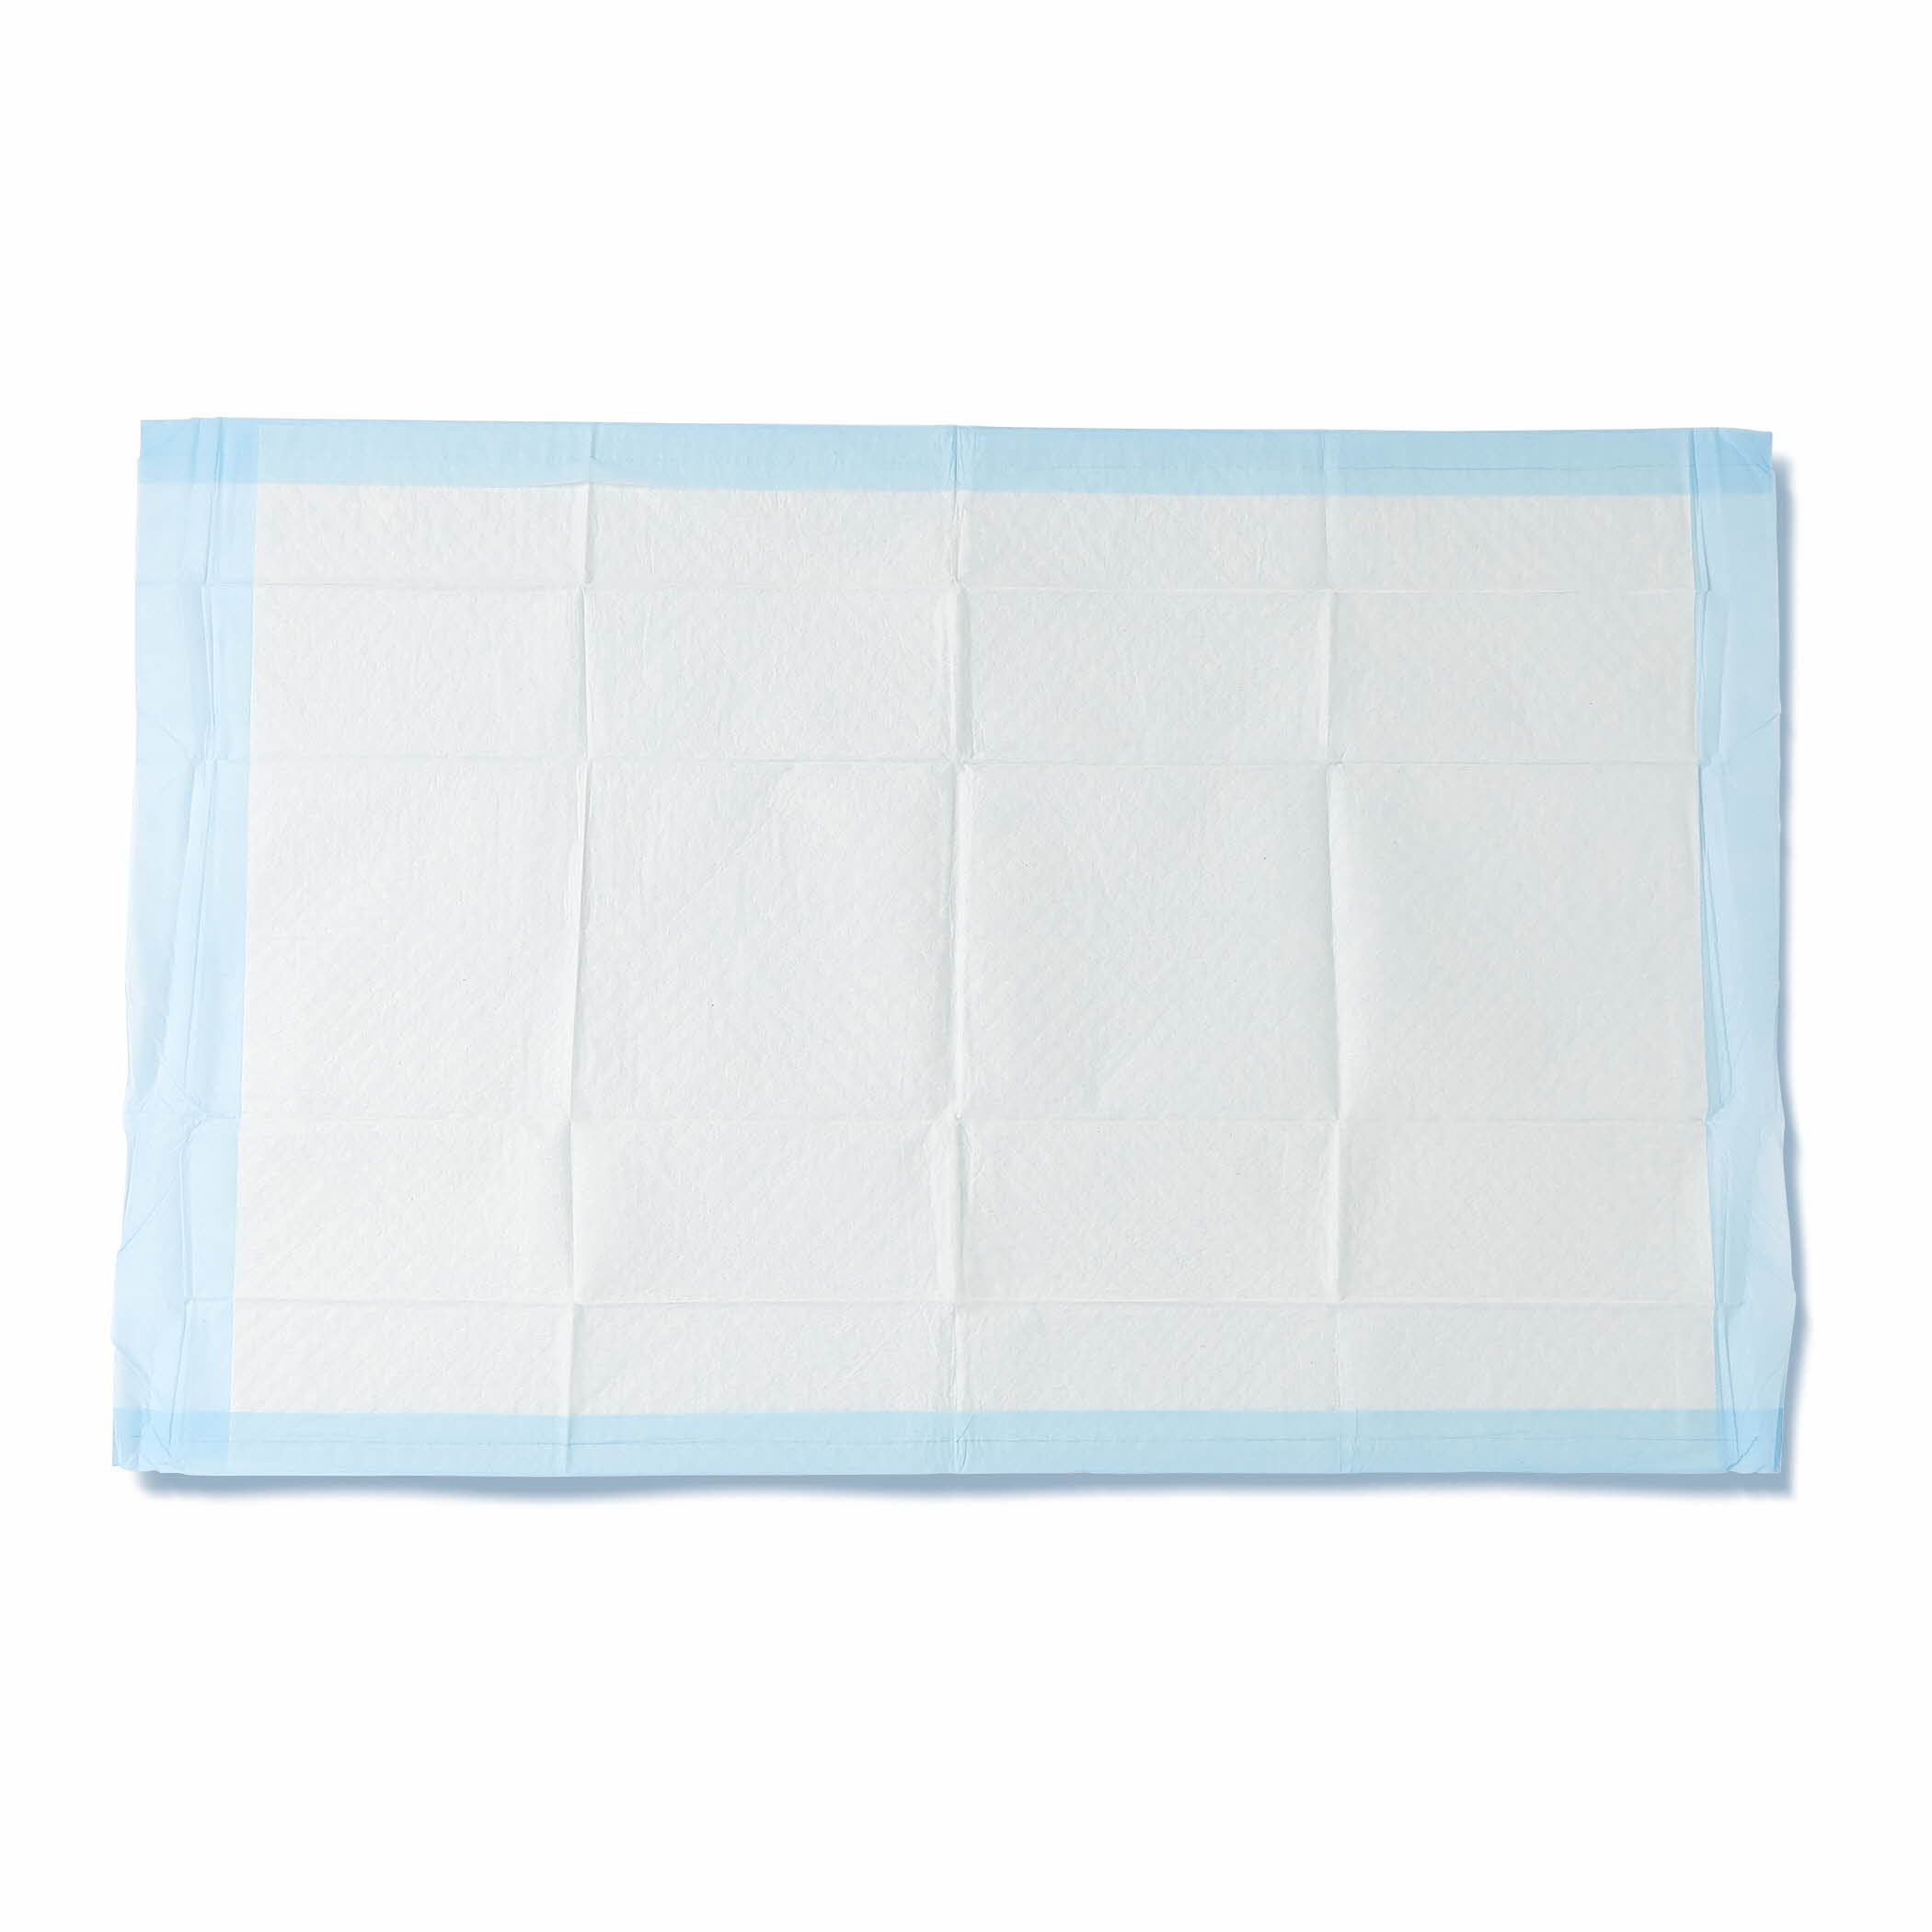 Medline Quilted Basic Disposable Blue Underpad, 23'' x 36'' for Incontinence, Furniture Protection or Pet Pads (Pack of 150) by Medline (Image #1)